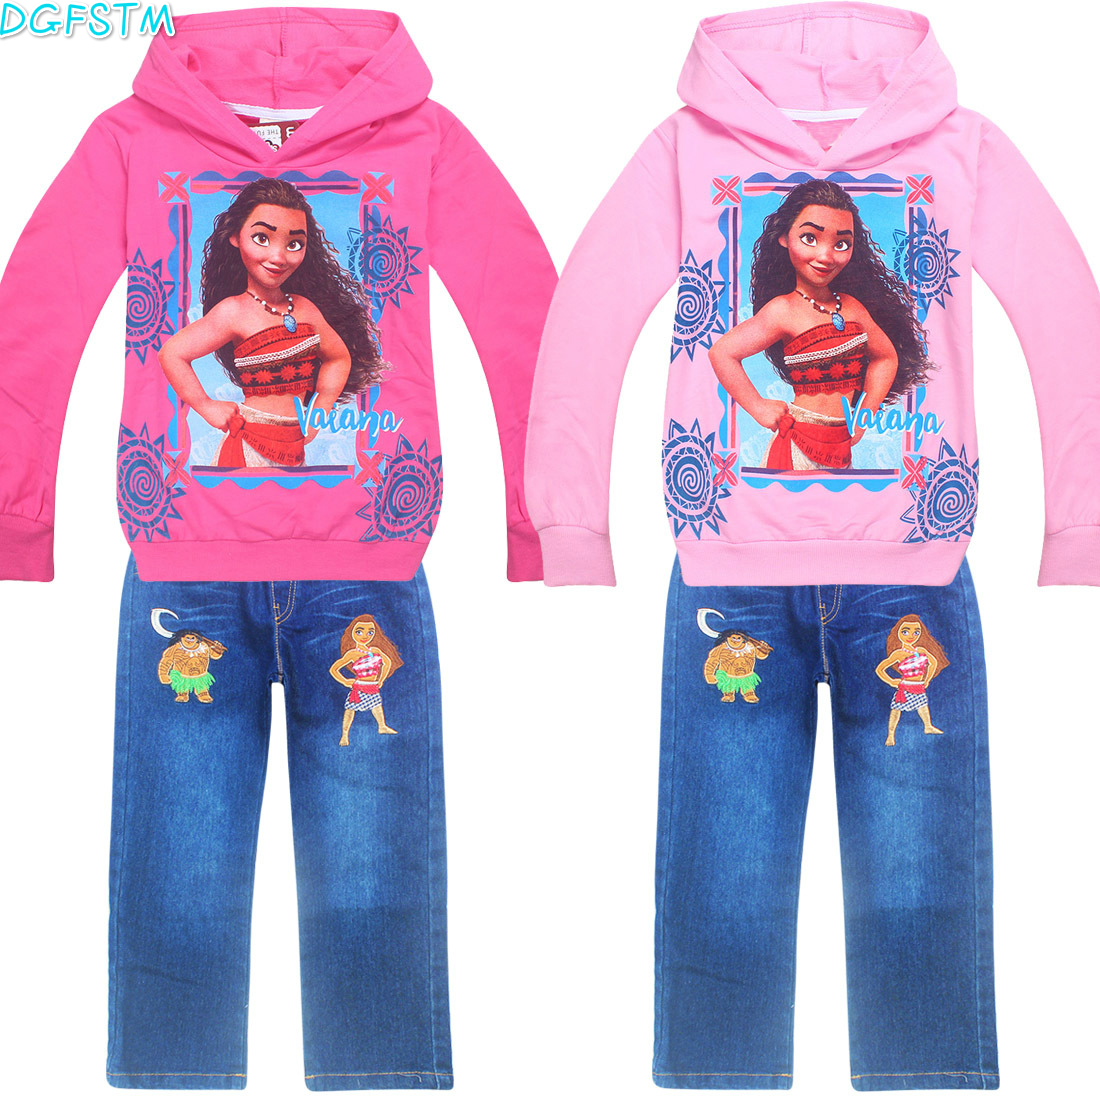 New Children Girls clothing set Autumn spring Moana long sleeve t-shirt+jeans pants 2pcs/set sprot wear Kids Vaiana clothes suit free shipping children clothing spring girl three dimensional embroidery 100% cotton suit long sleeve t shirt pants